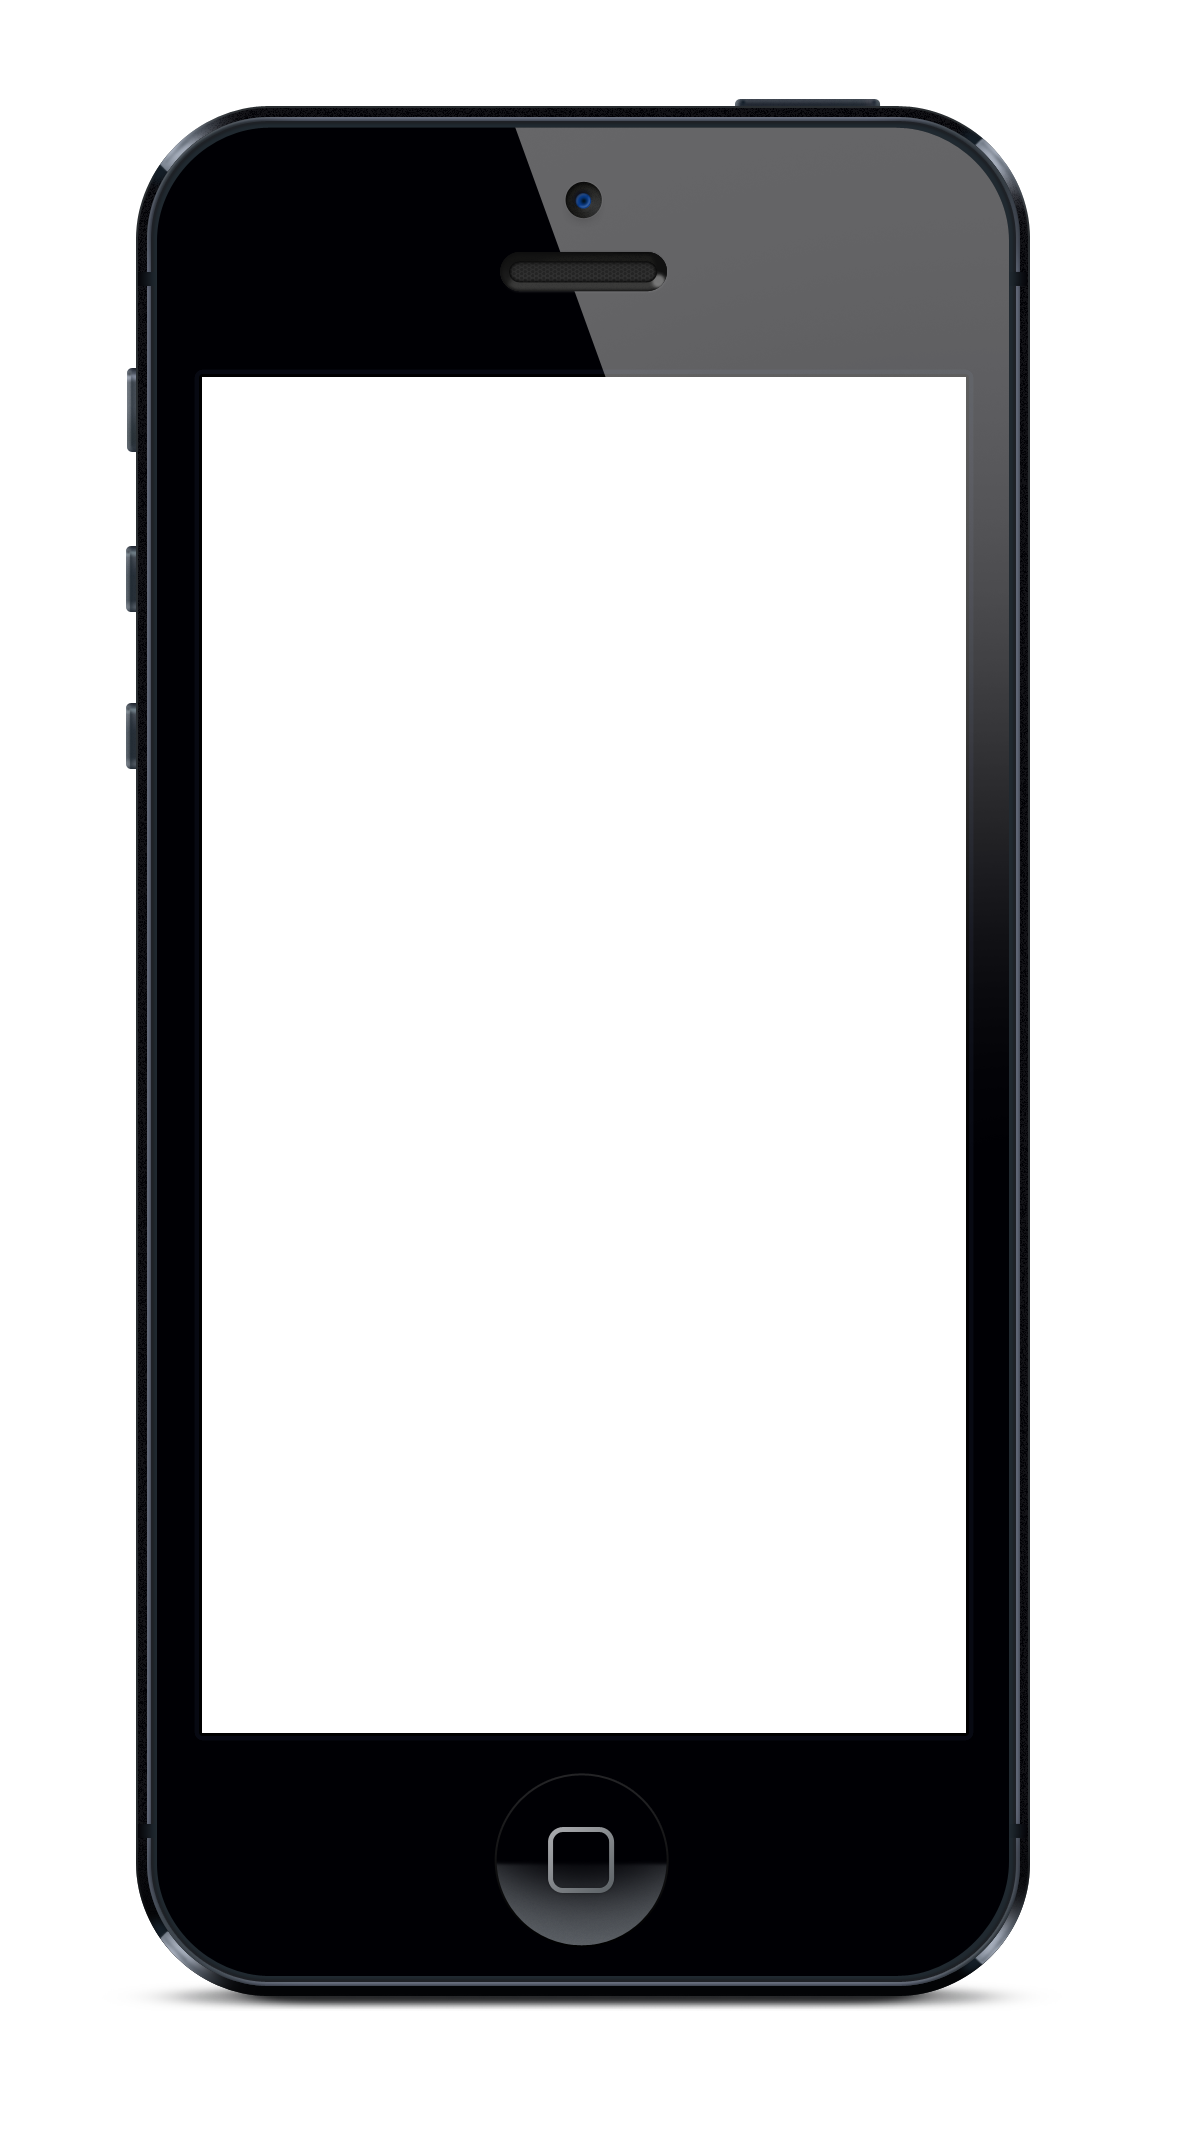 Iphone 5 png. Apple images free download